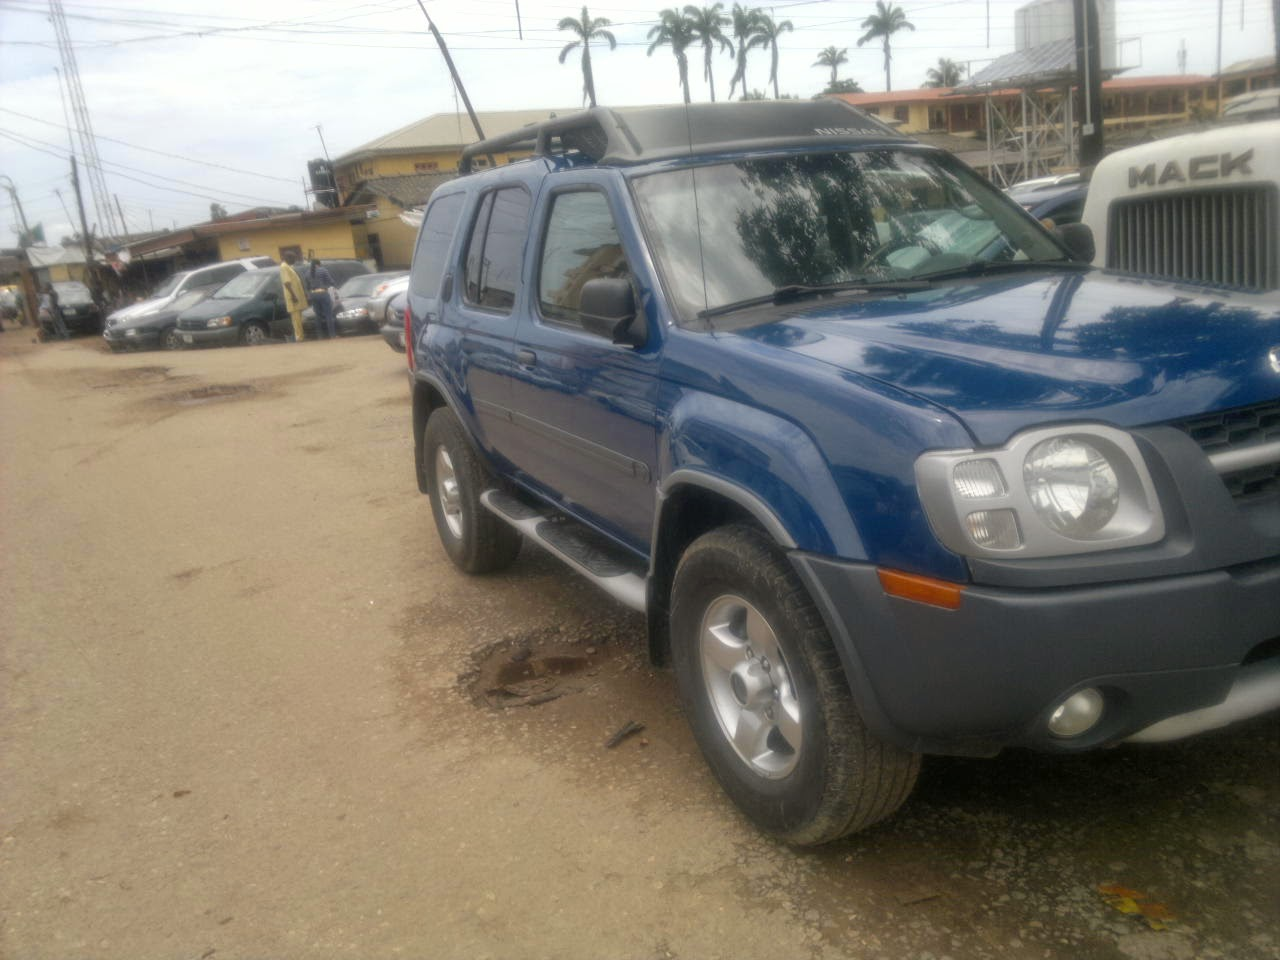 2004 Nissan Xterra 4X4 hd photo